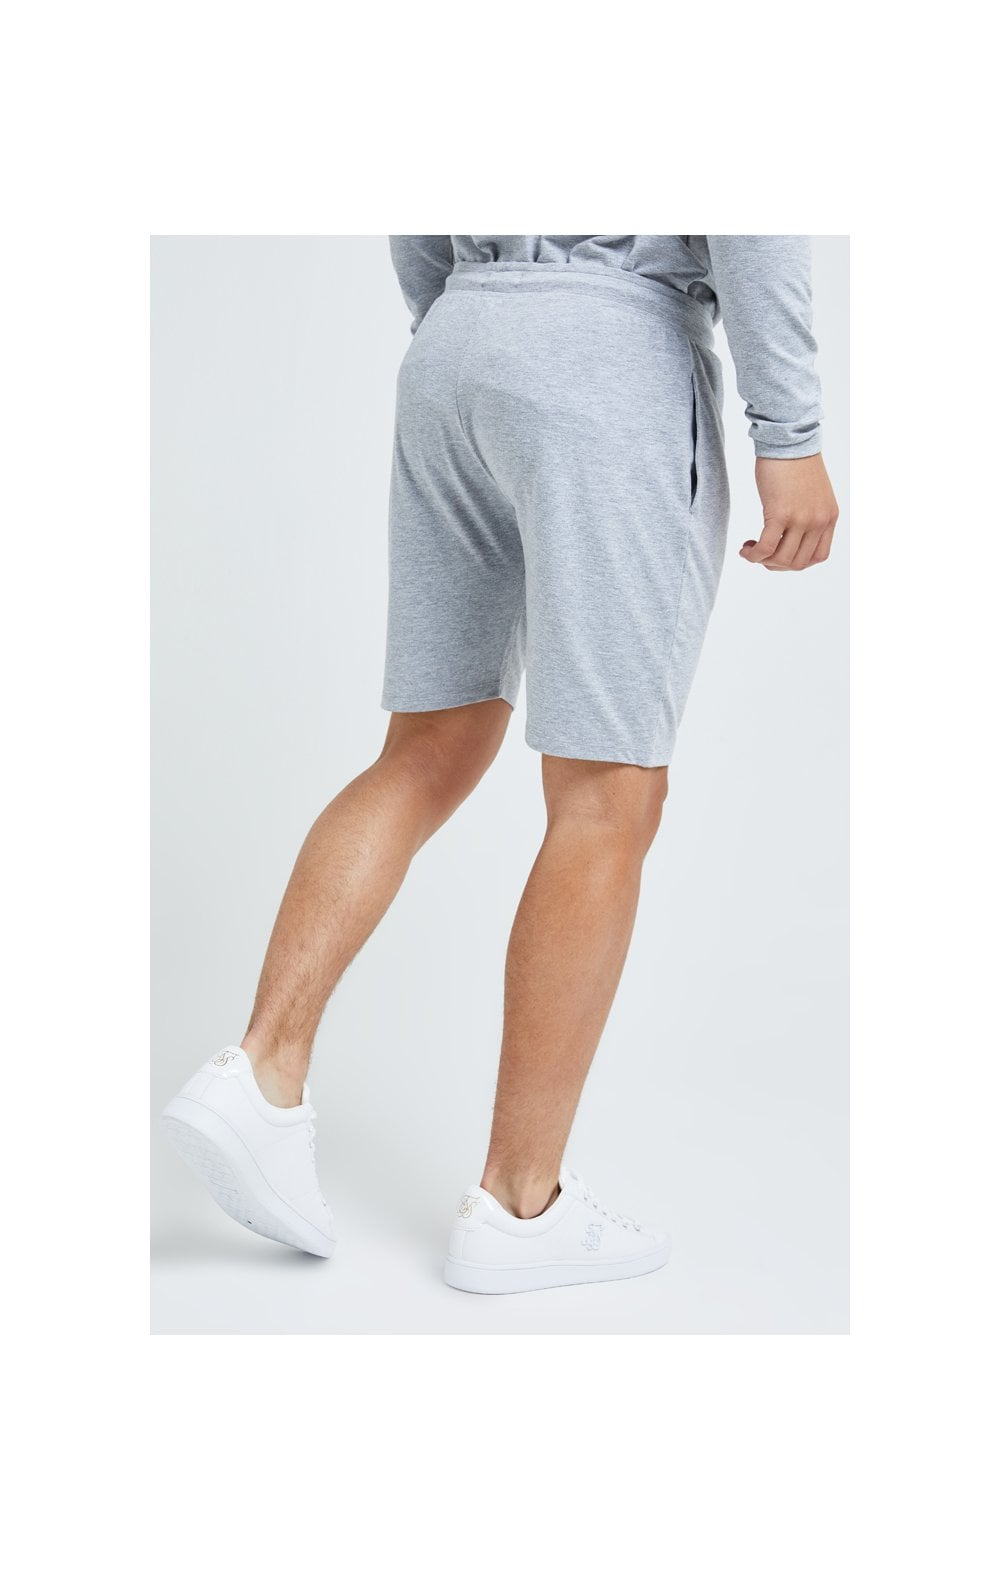 Illusive London Core Jersey Shorts - Grey Marl (4)